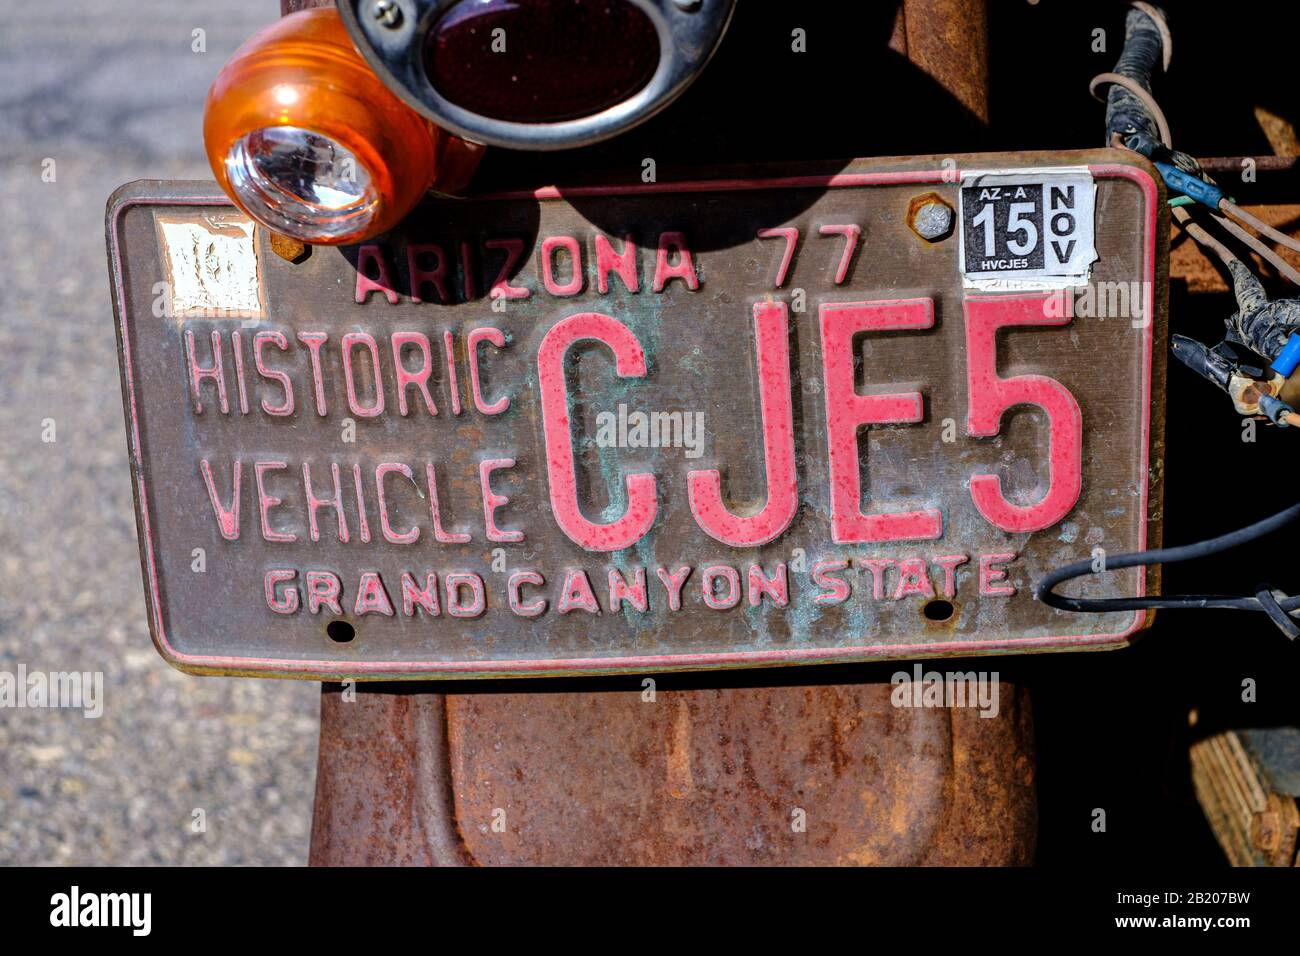 Historic vehicle on display outside Mineshaft Market in Chloride, Arizona, USA Stock Photo